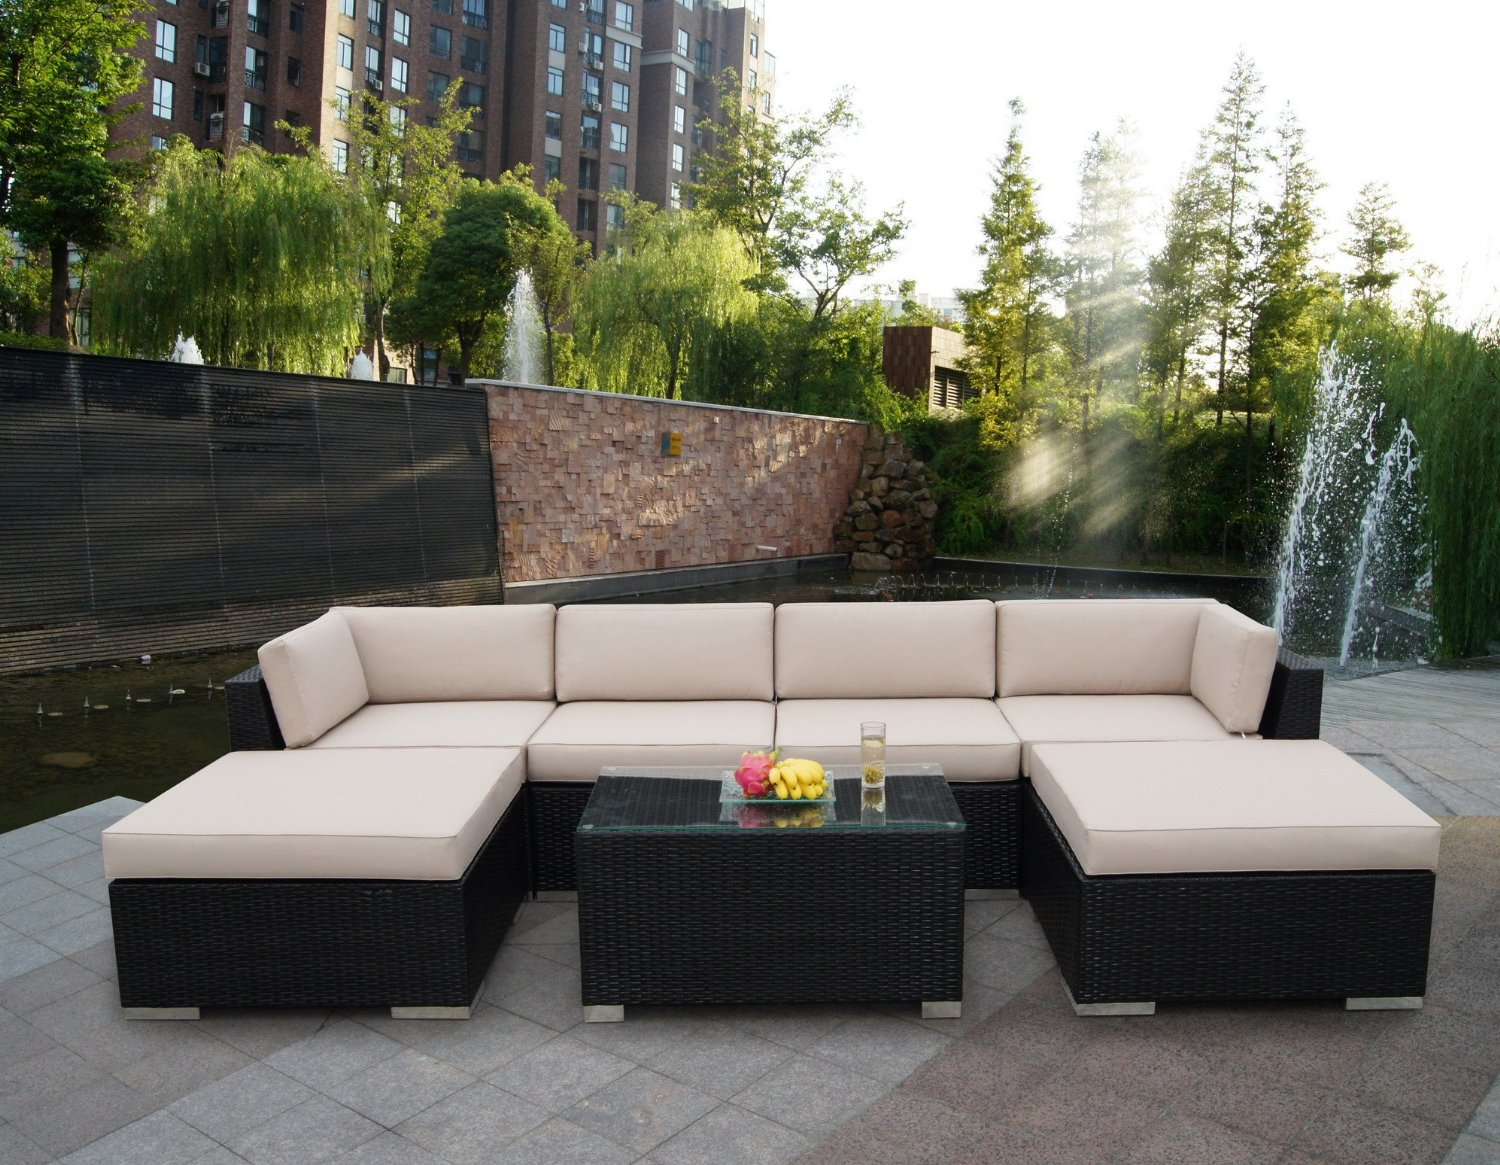 Looking for Fantastic Outdoor Wicker Patio Furniture? Read These Tips First